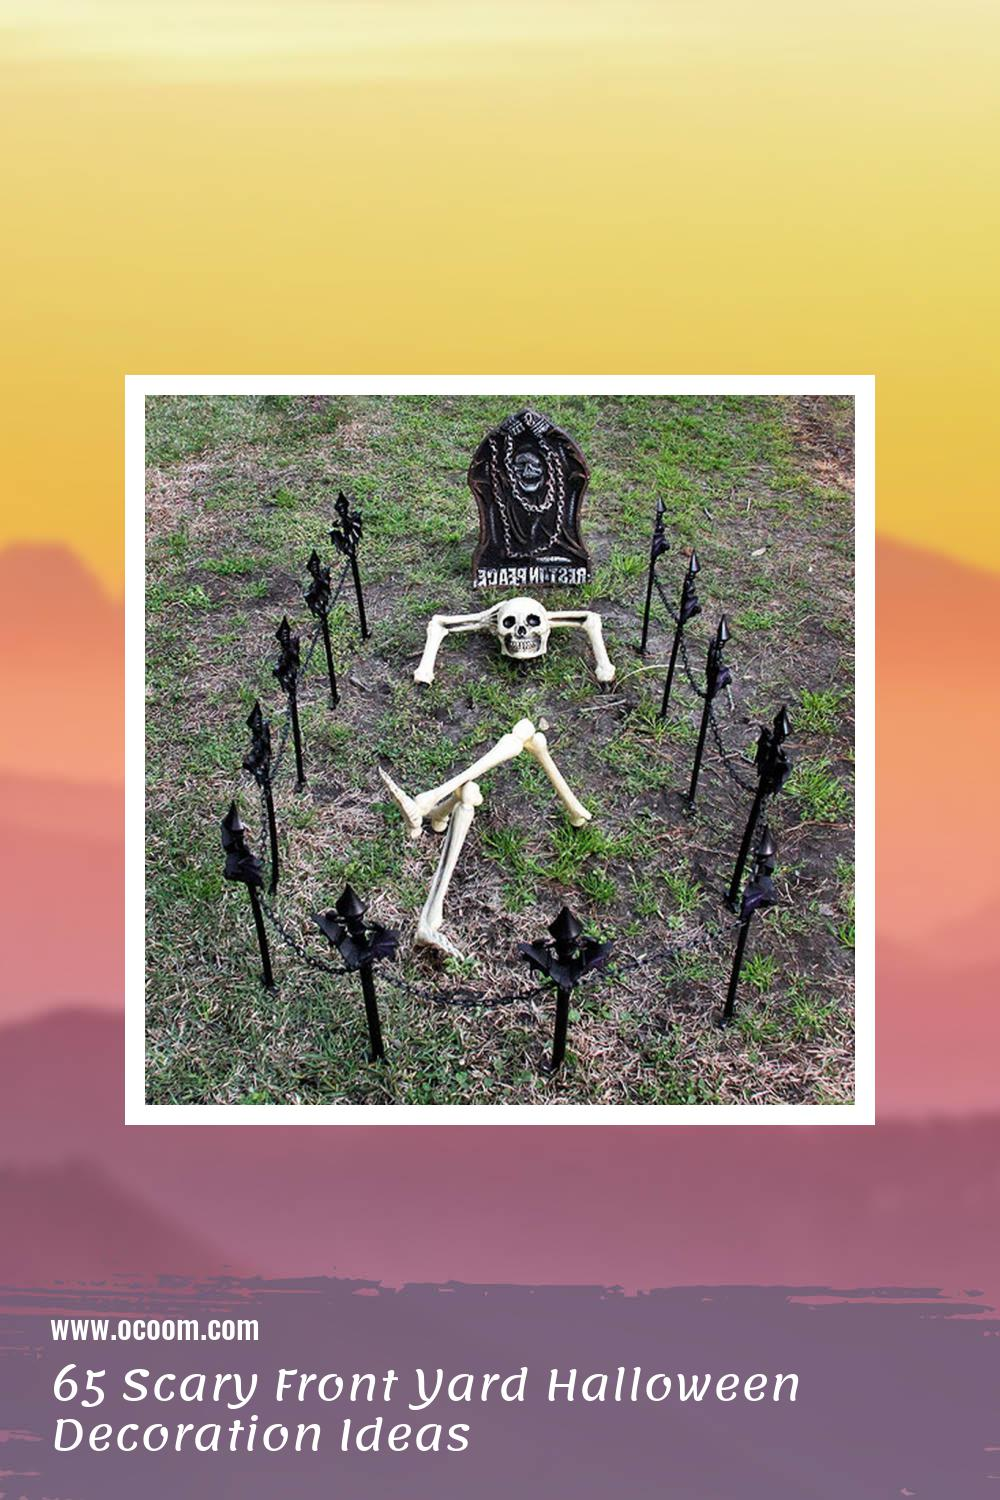 65 Scary Front Yard Halloween Decoration Ideas 31